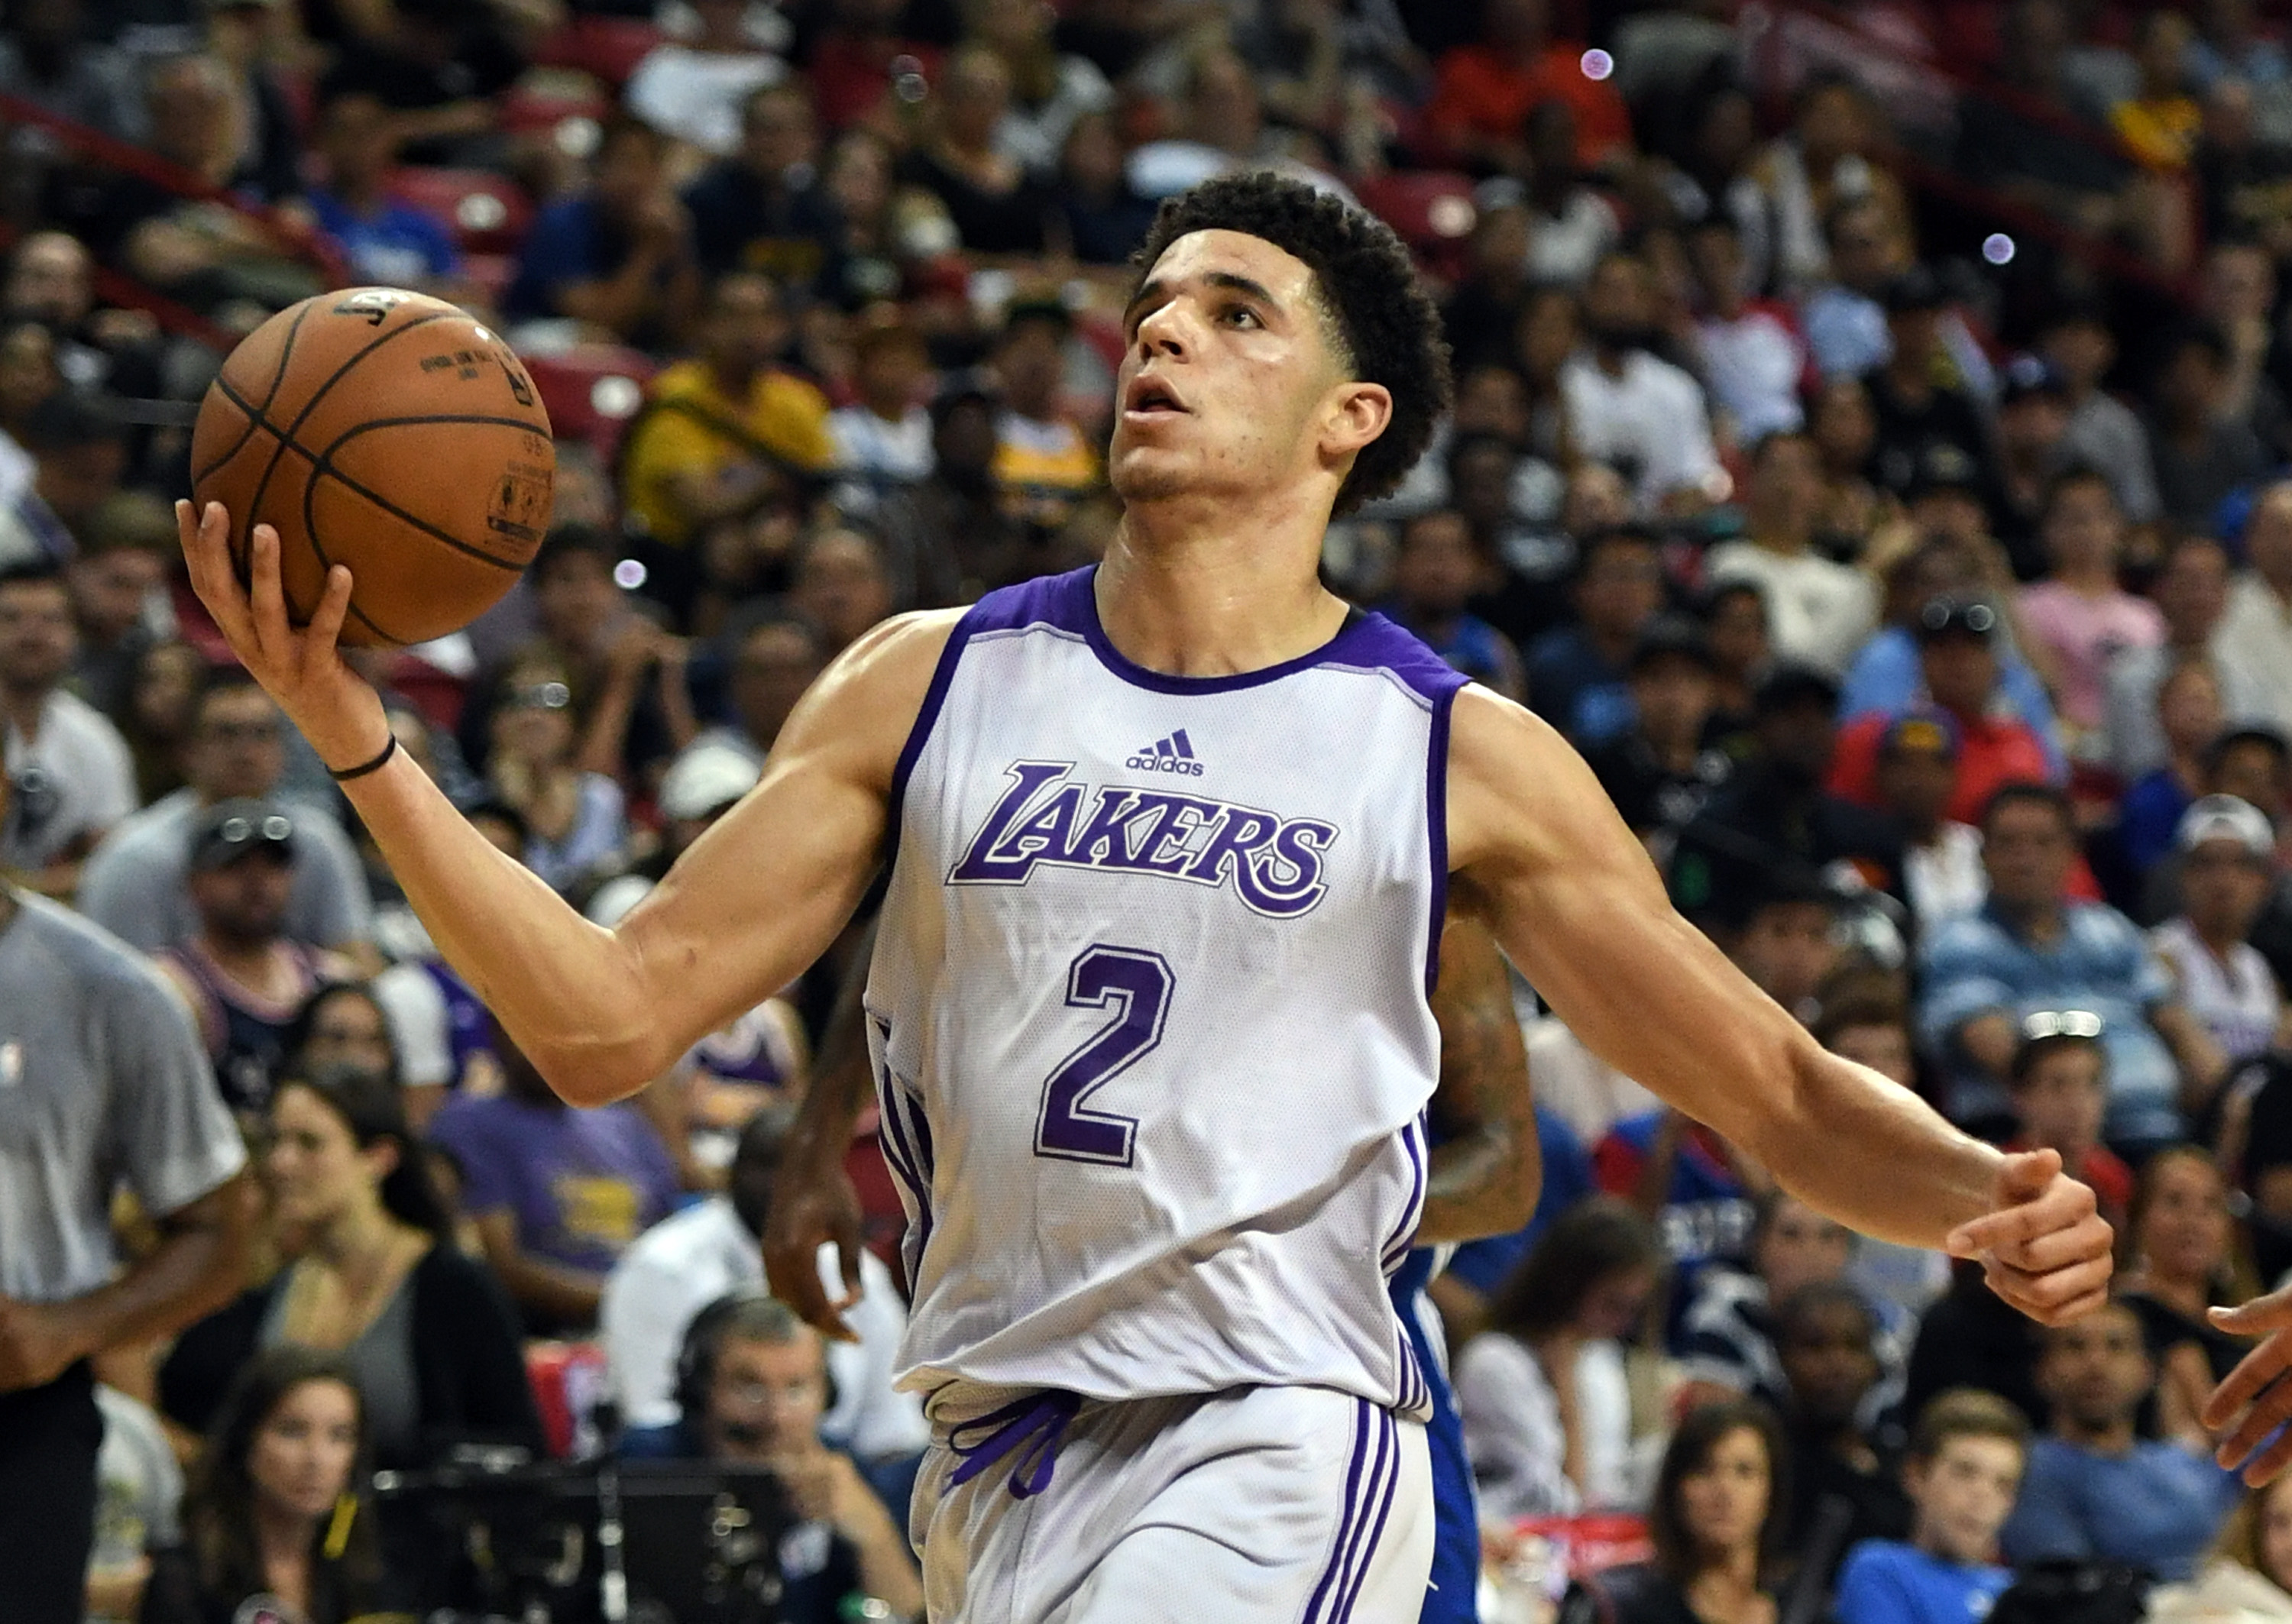 Lonzo Ball Notches Impressive Double-Double in Win vs. 76ers